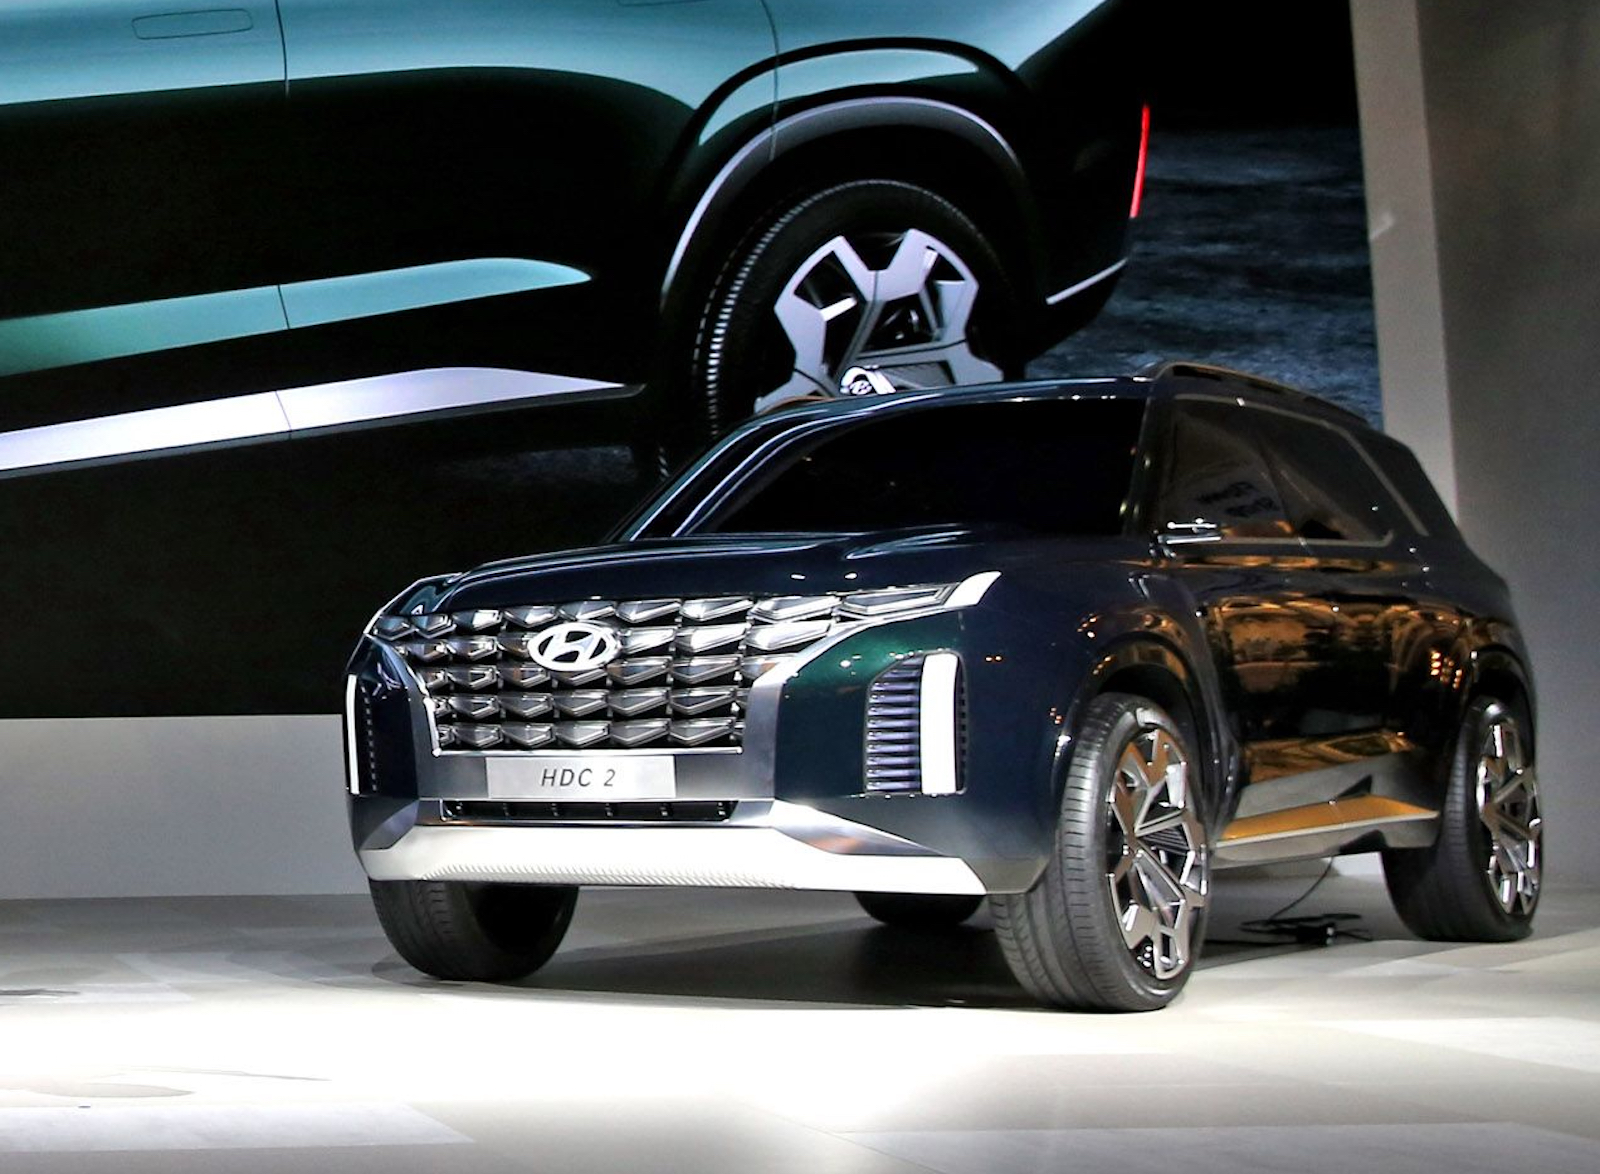 Hyundai Grandmaster Suv Concept Previews Its Future Designs